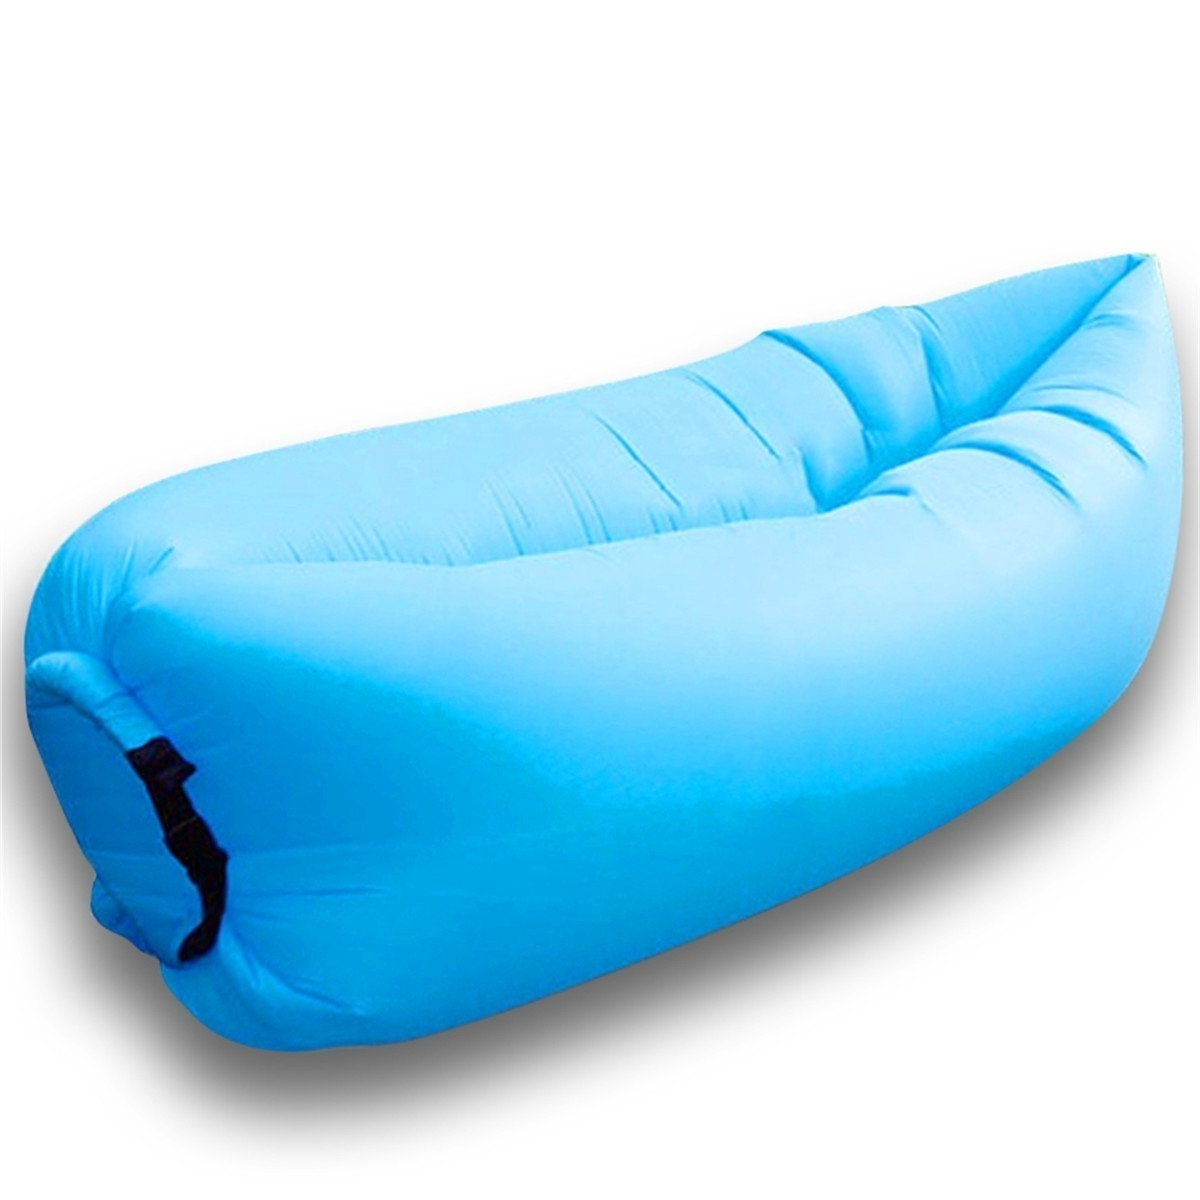 Inflatable Sofas And Chairs Throughout Trendy Inflatable Sofa Chair 56 With Inflatable Sofa Chair (View 8 of 20)